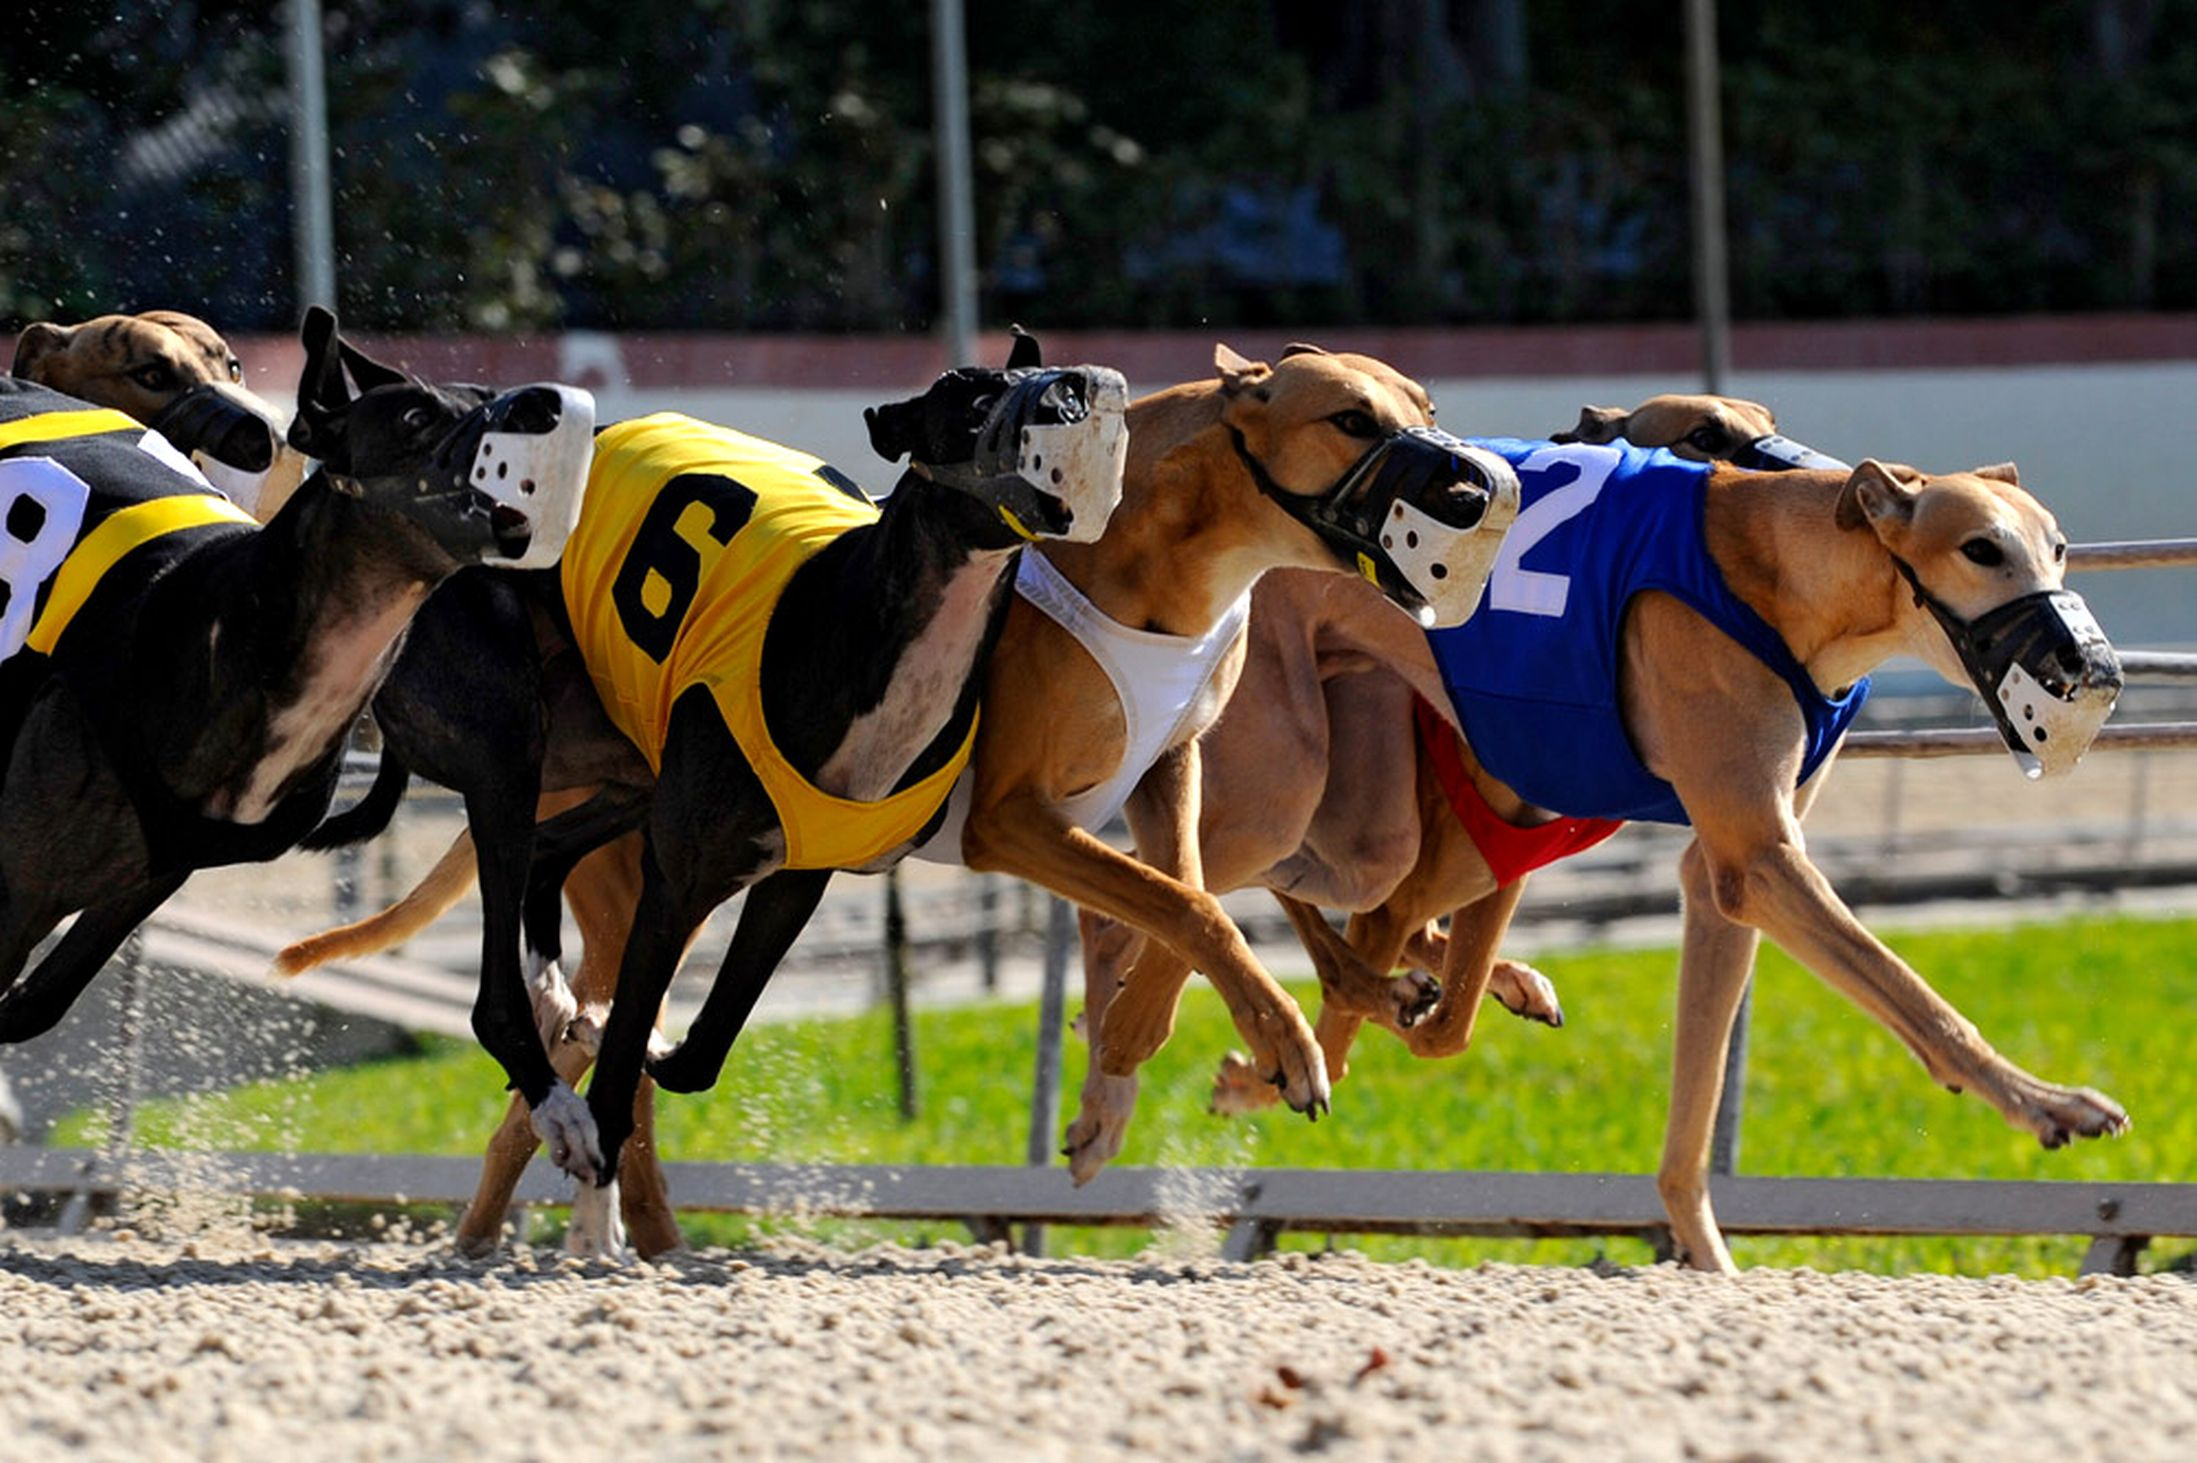 Greyhound Racing Dog Rescue